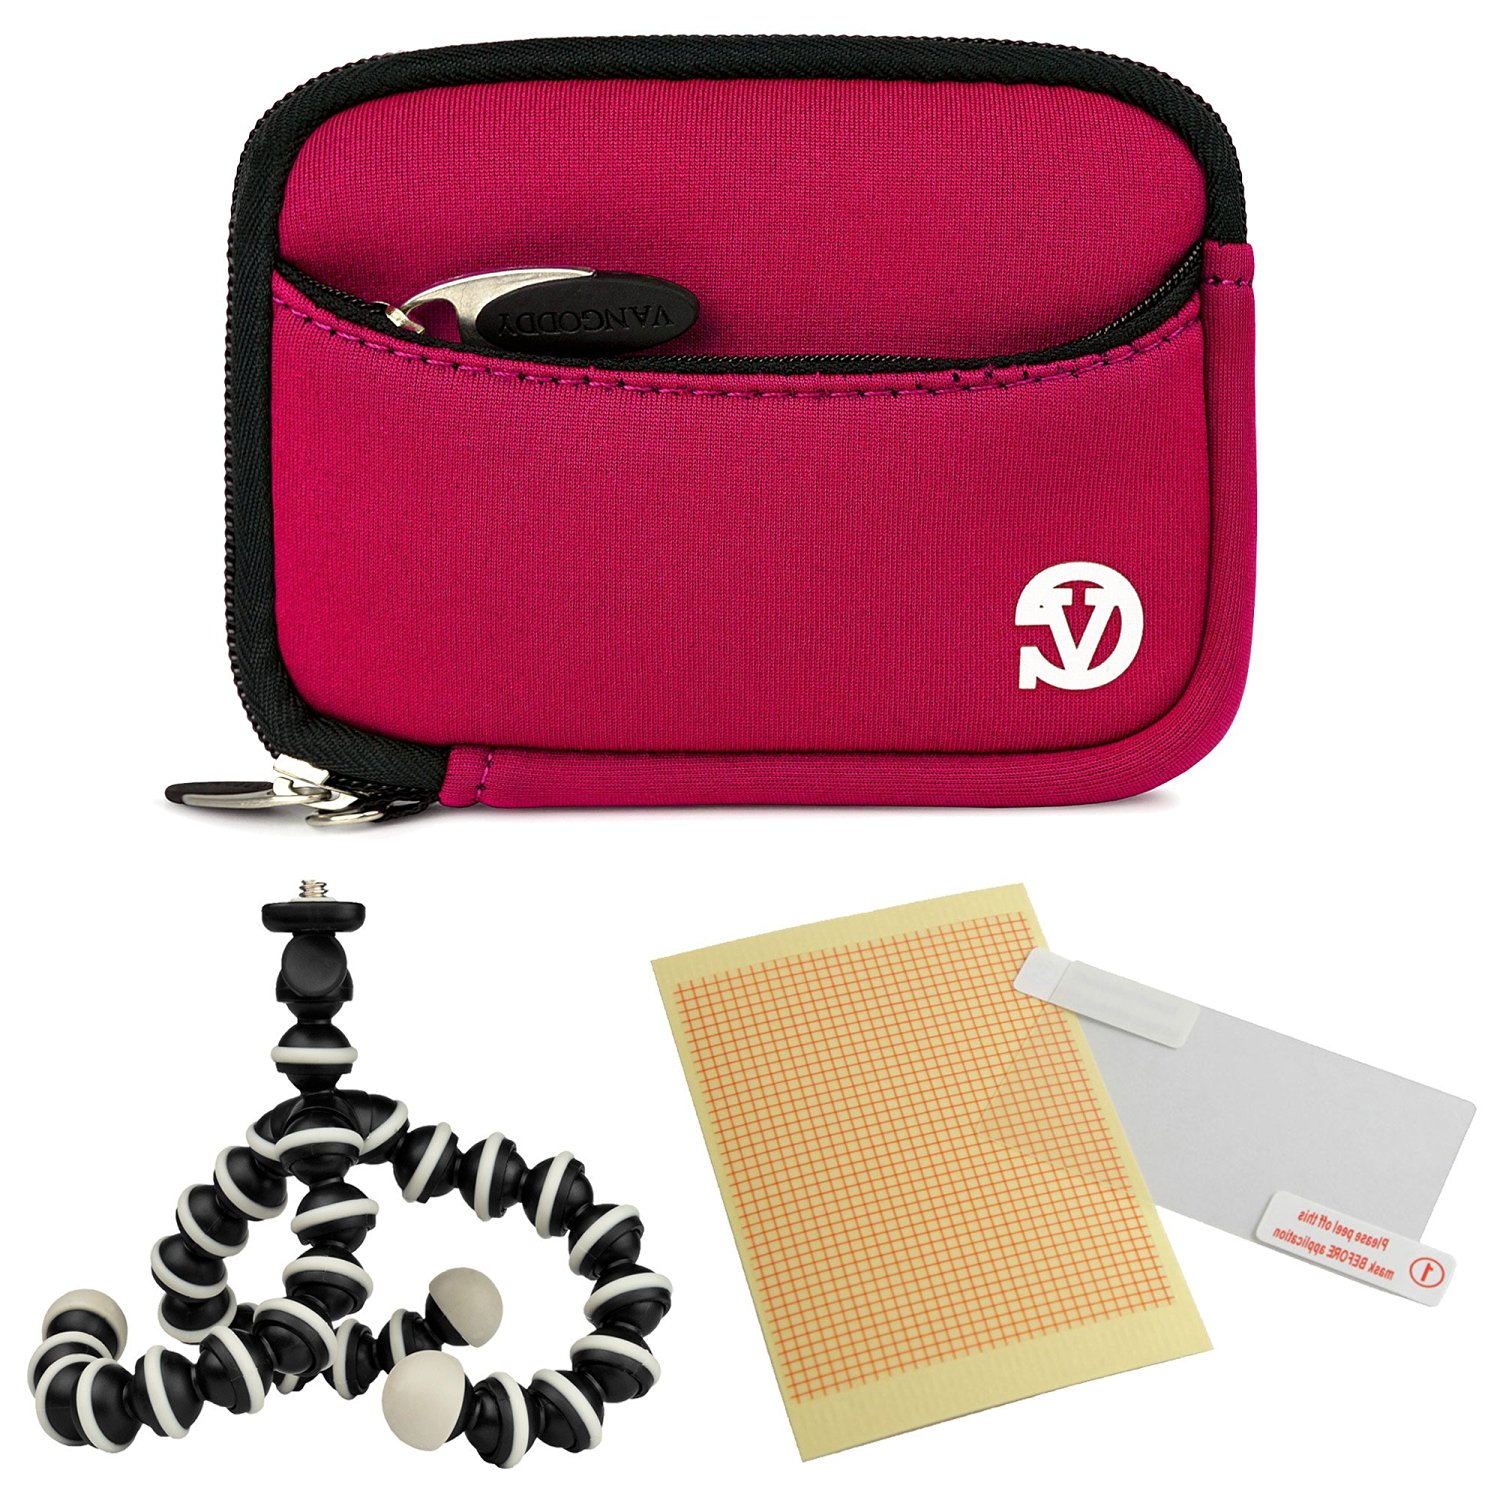 VanGoddy Mini Glove Sleeve Pouch Case for Canon PowerShot S120, S110, S100, S95, S90 Digital Cameras (Magenta) + Screen Protector + Mini Tripod Stand